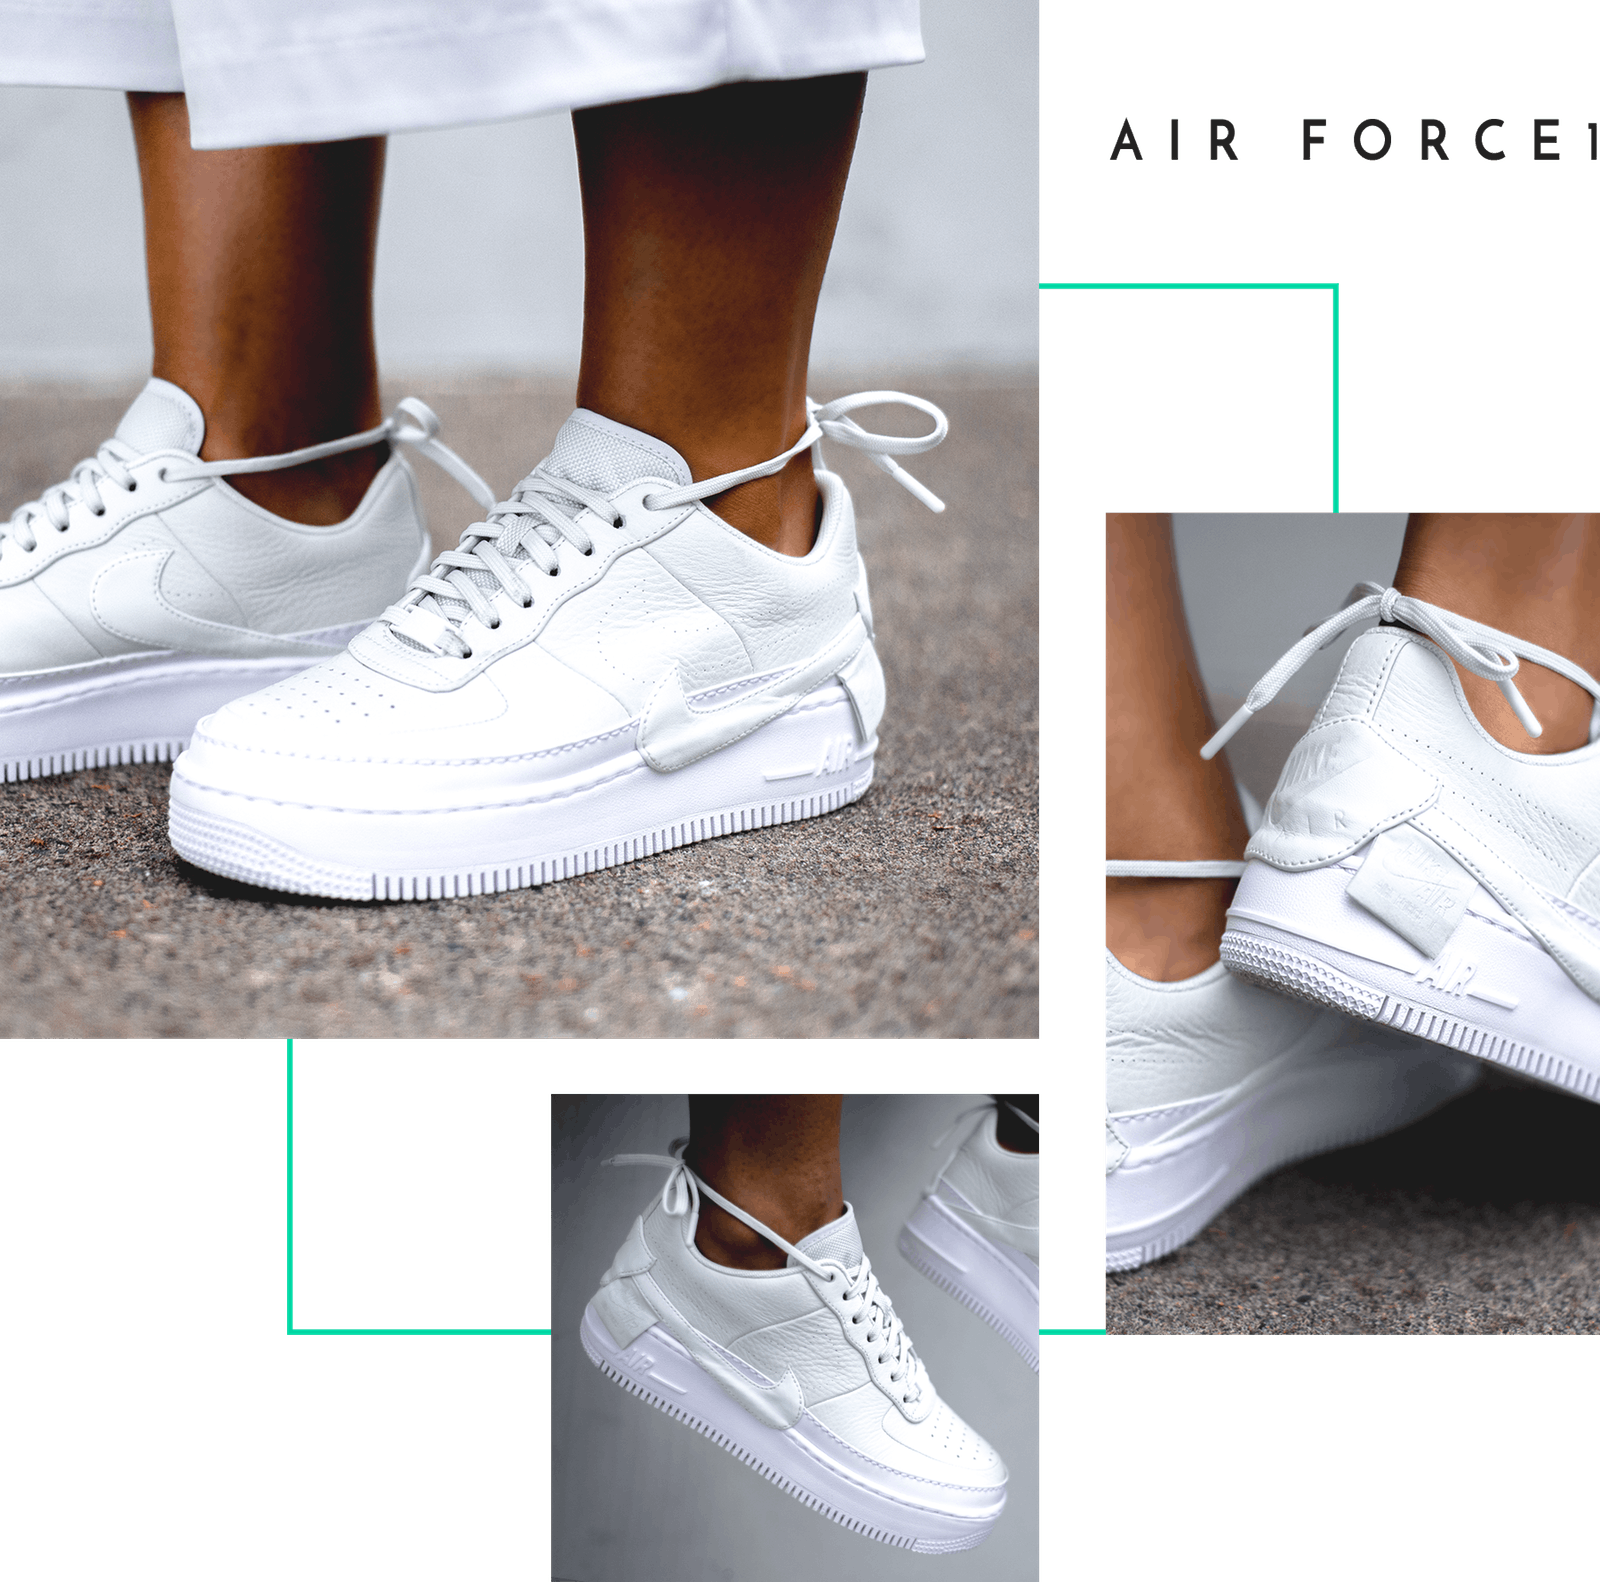 Nike The 1 Reimagined Jester XX Air Force 1 Jordan Jumpman Boot Logo Swoosh  Women Female Design Collective Release Date Where to Buy Closer On Feet  Look ... b5fe0ee31